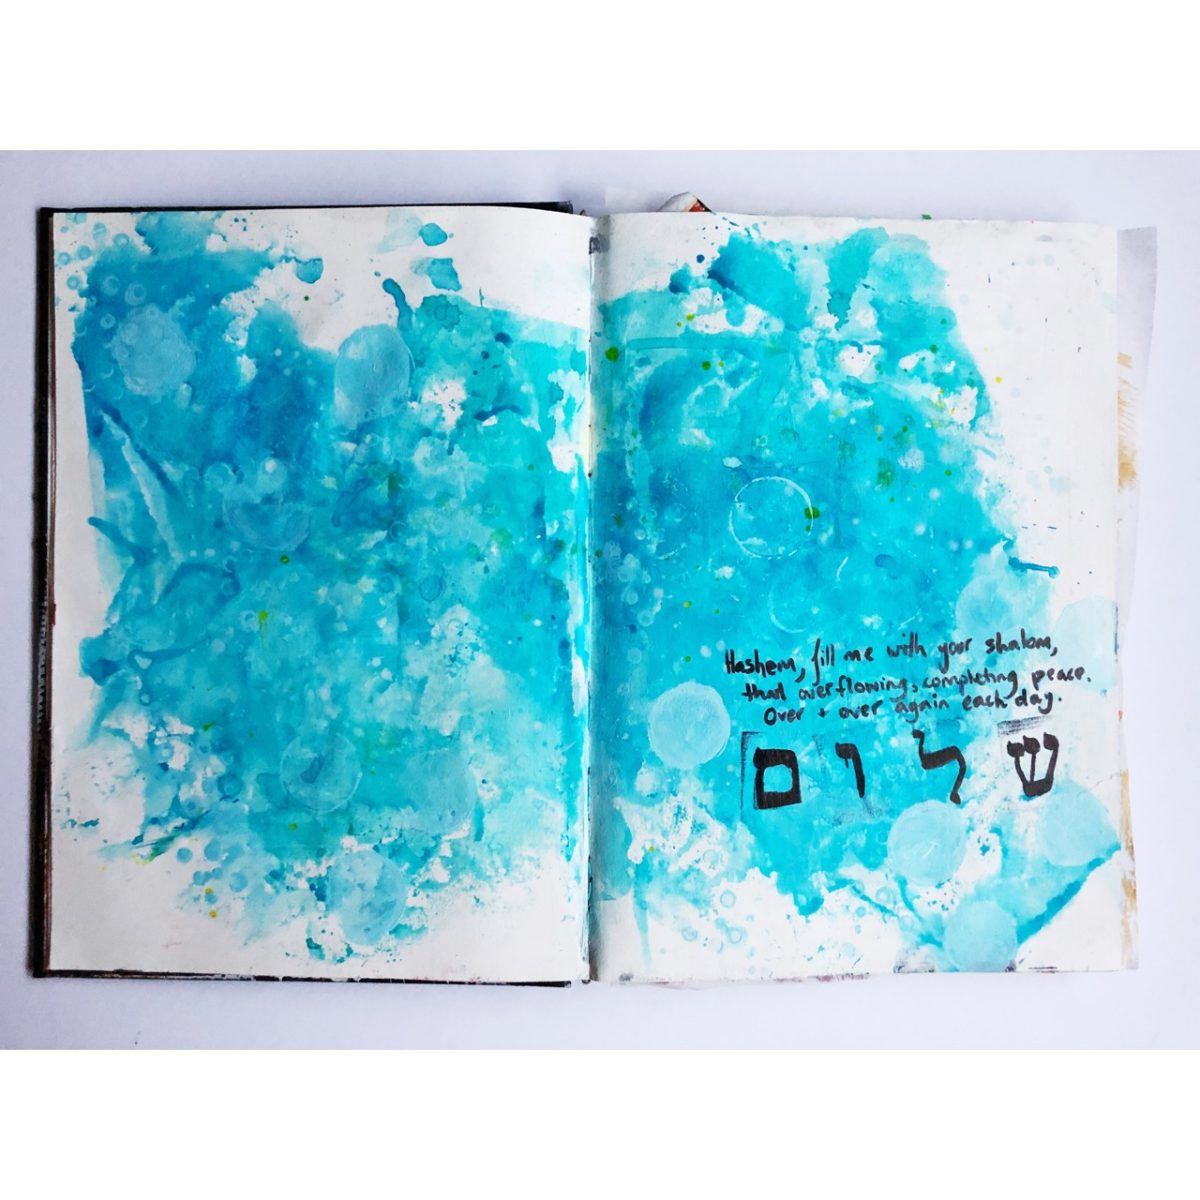 Jewish art journaling of the word shalom